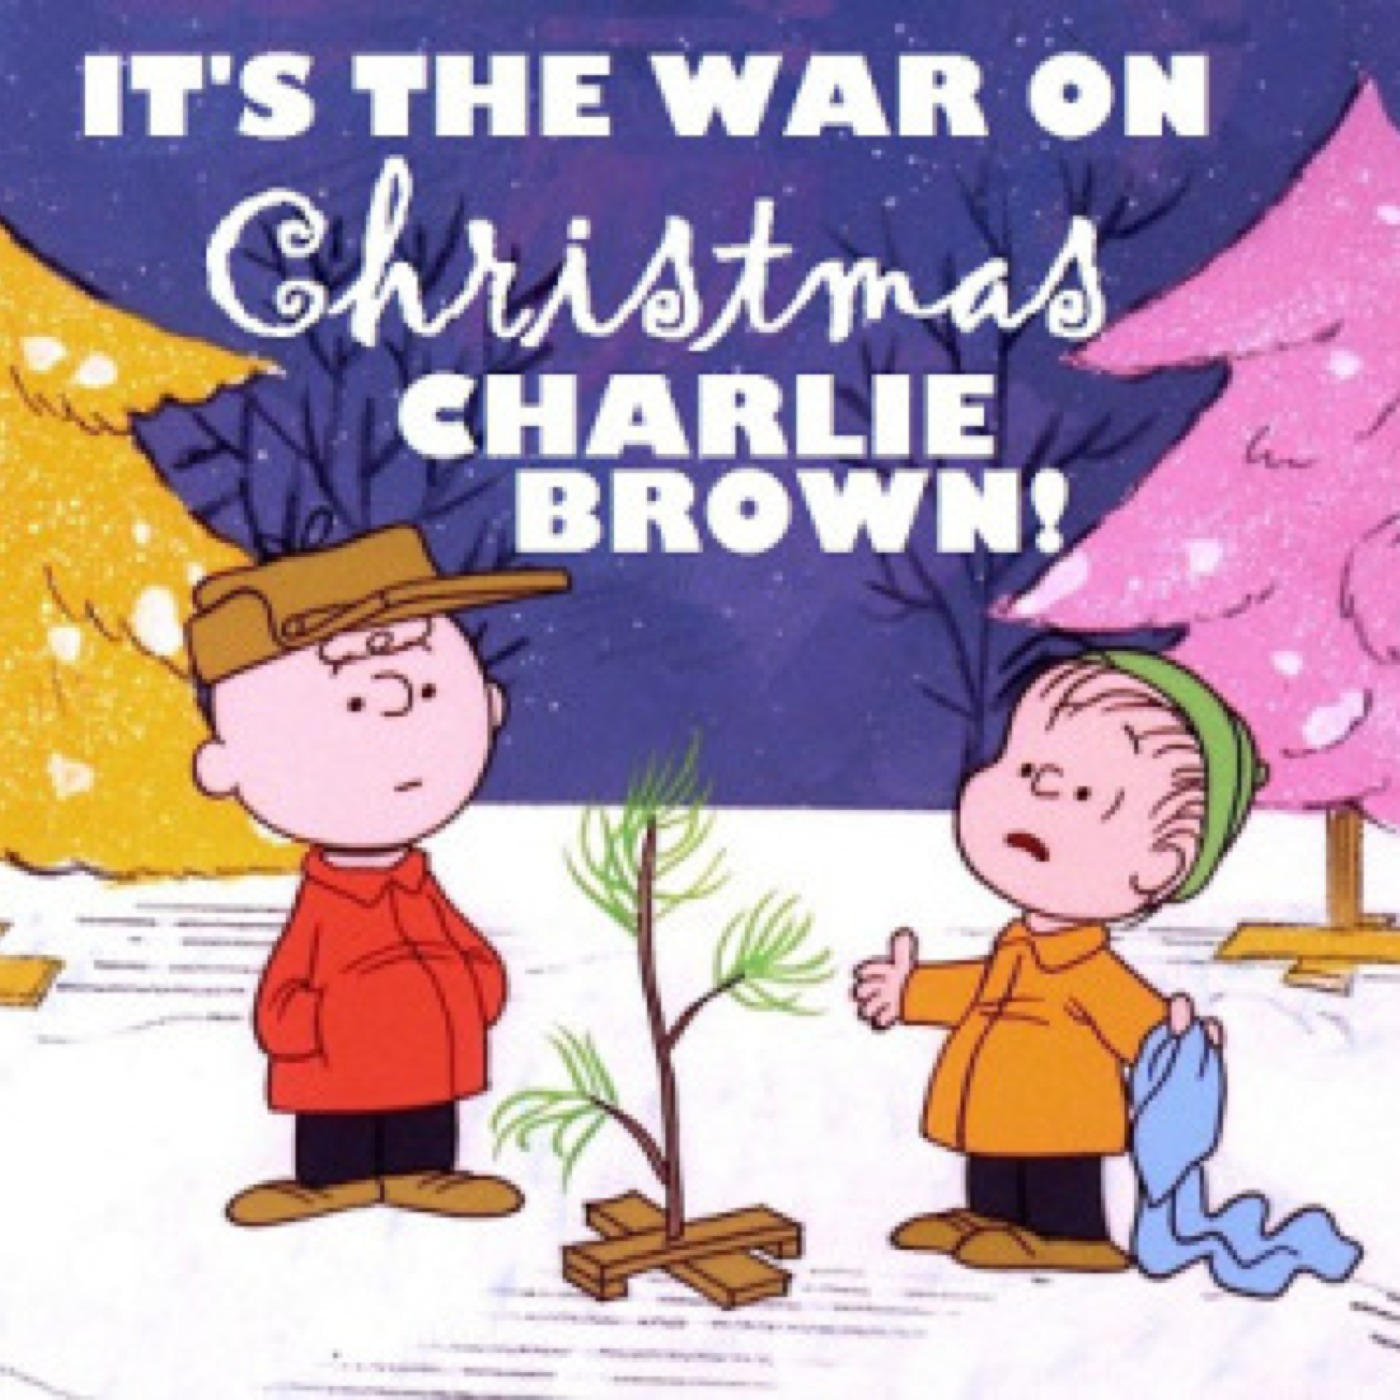 (2014/12/23) Our annual collective waste of time (War on Christmas)